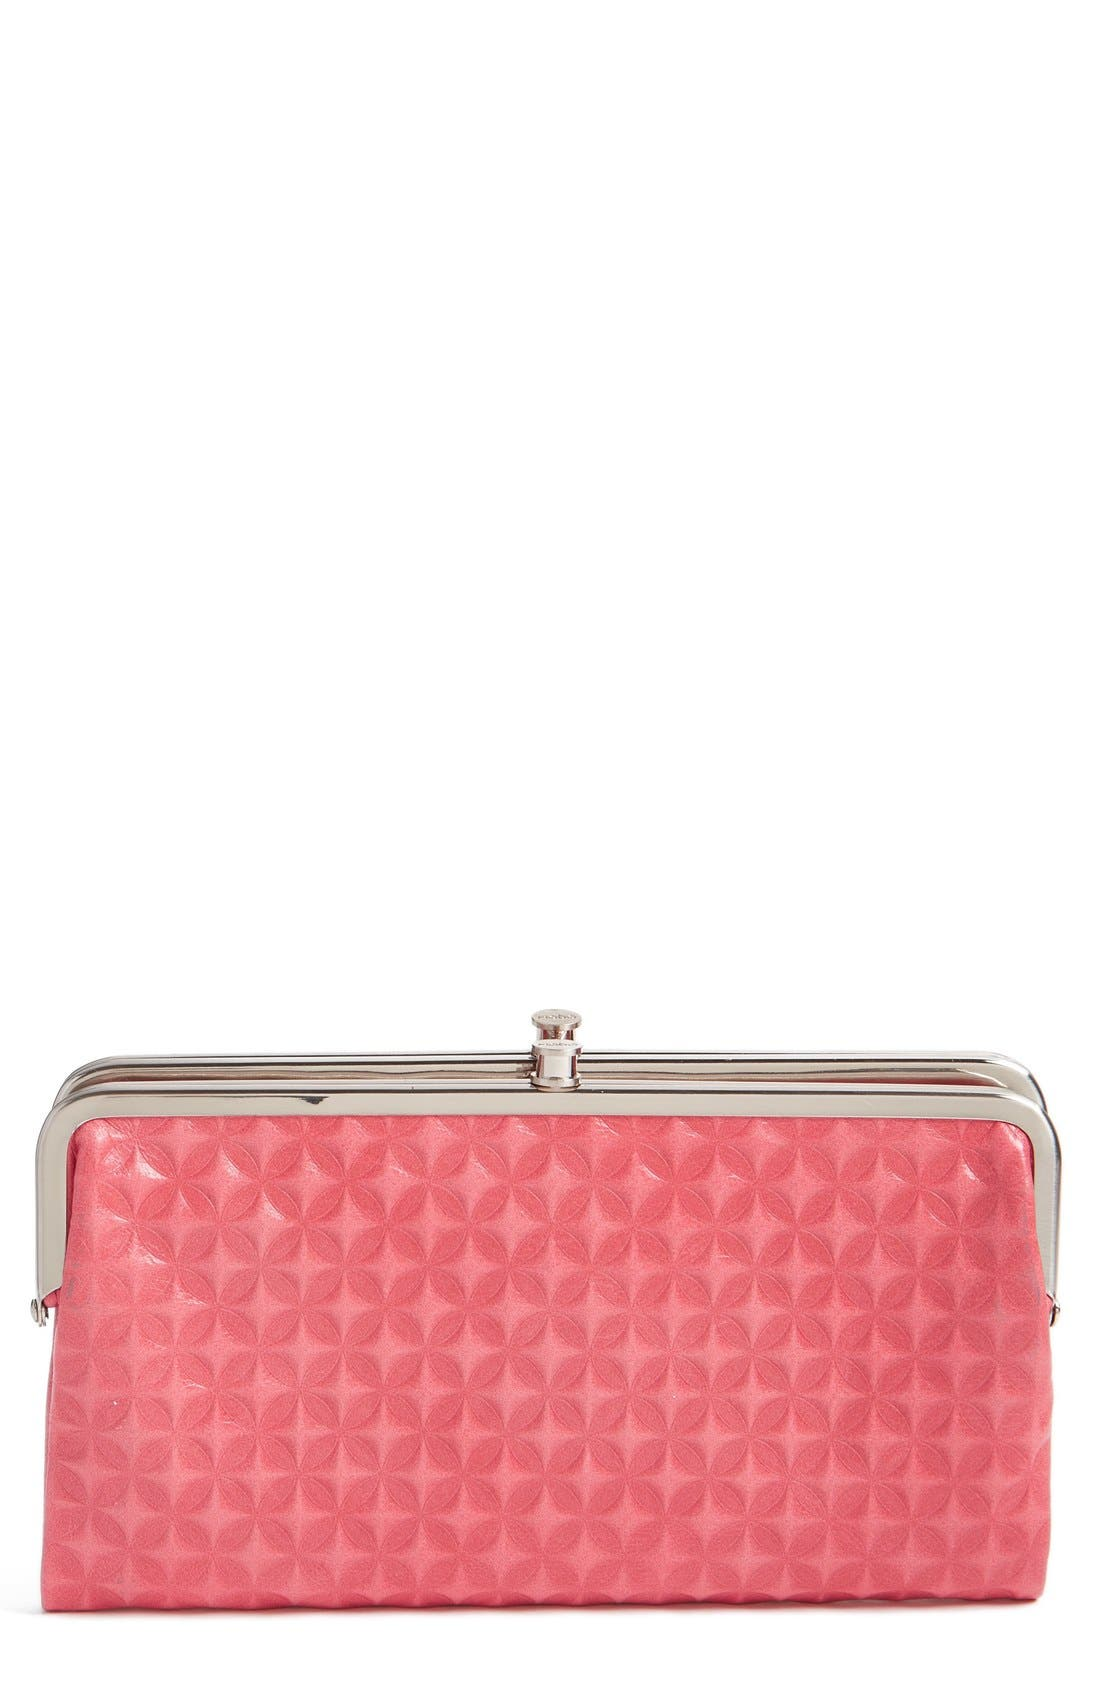 Alternate Image 1 Selected - Hobo 'Lauren' Embossed Leather Double Frame Clutch